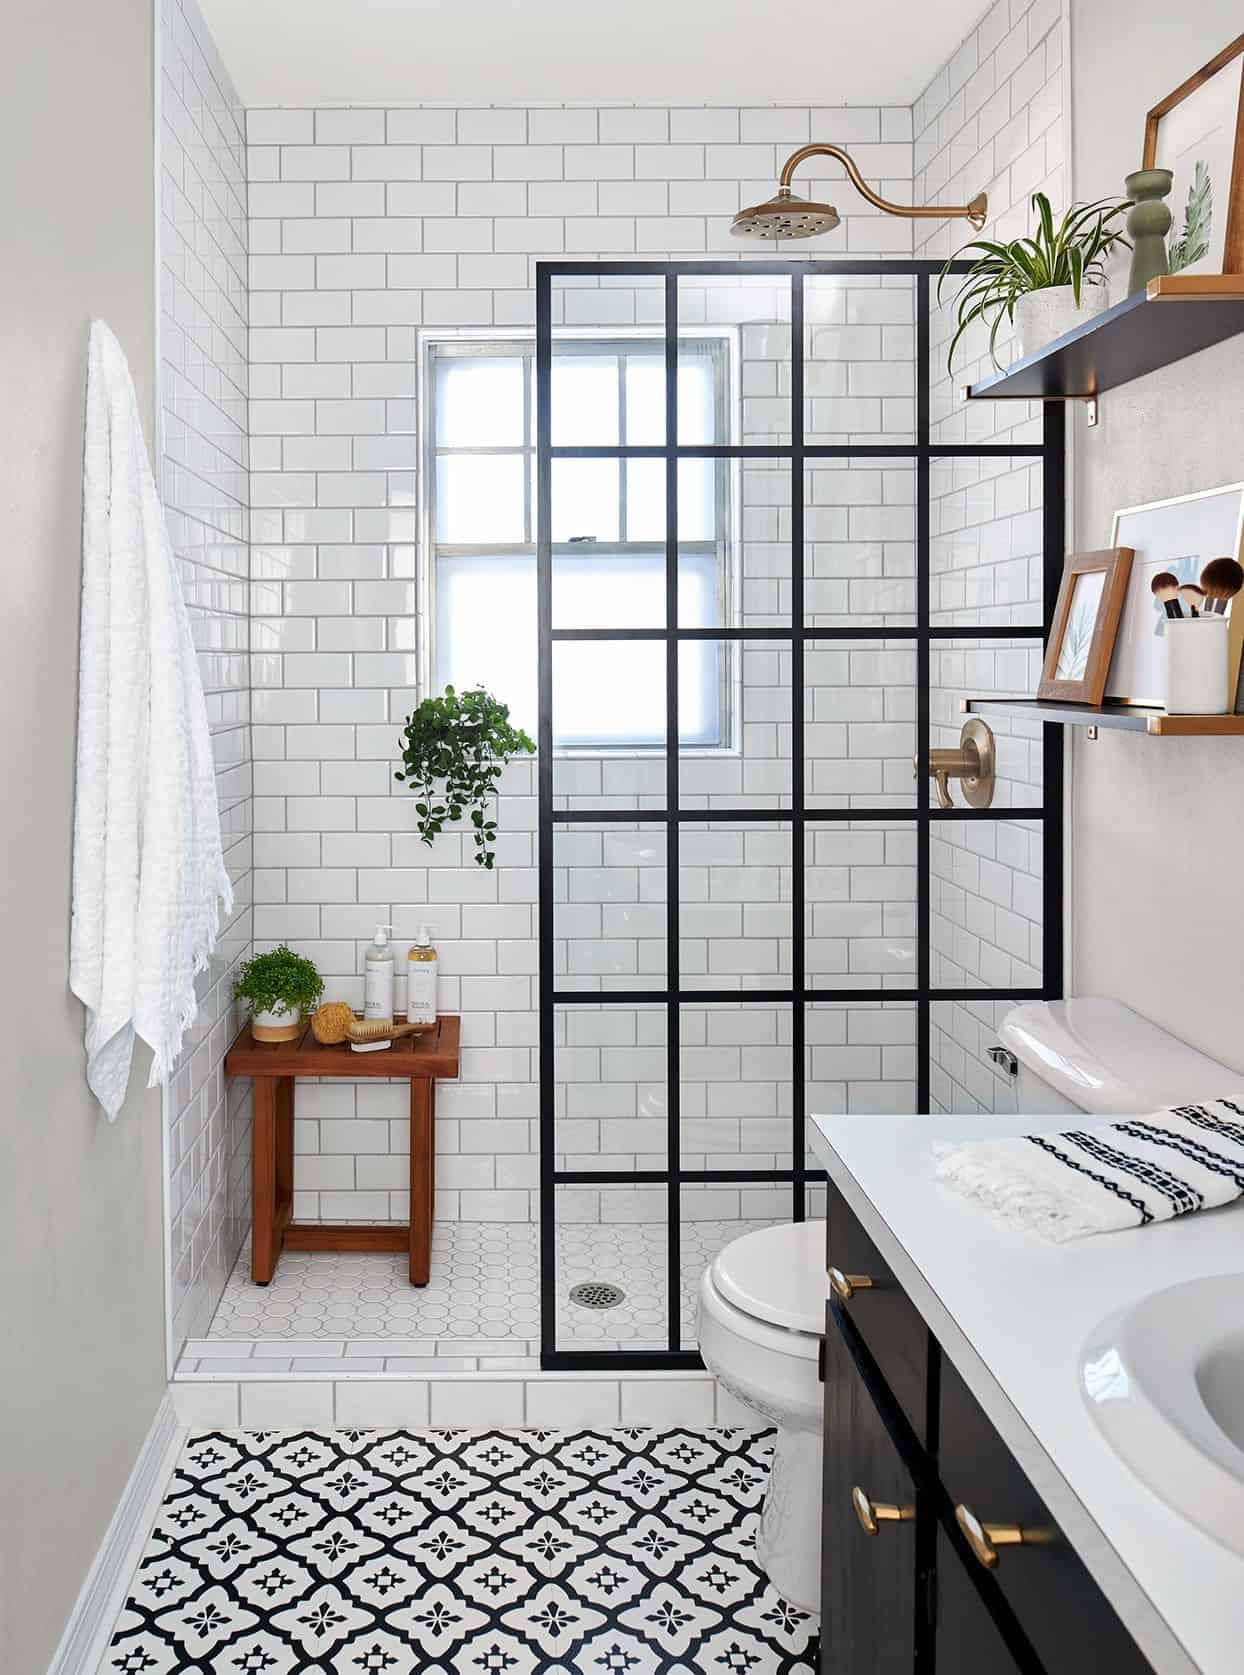 DIY Bathroom Remodel Ideas - Easy Transformation